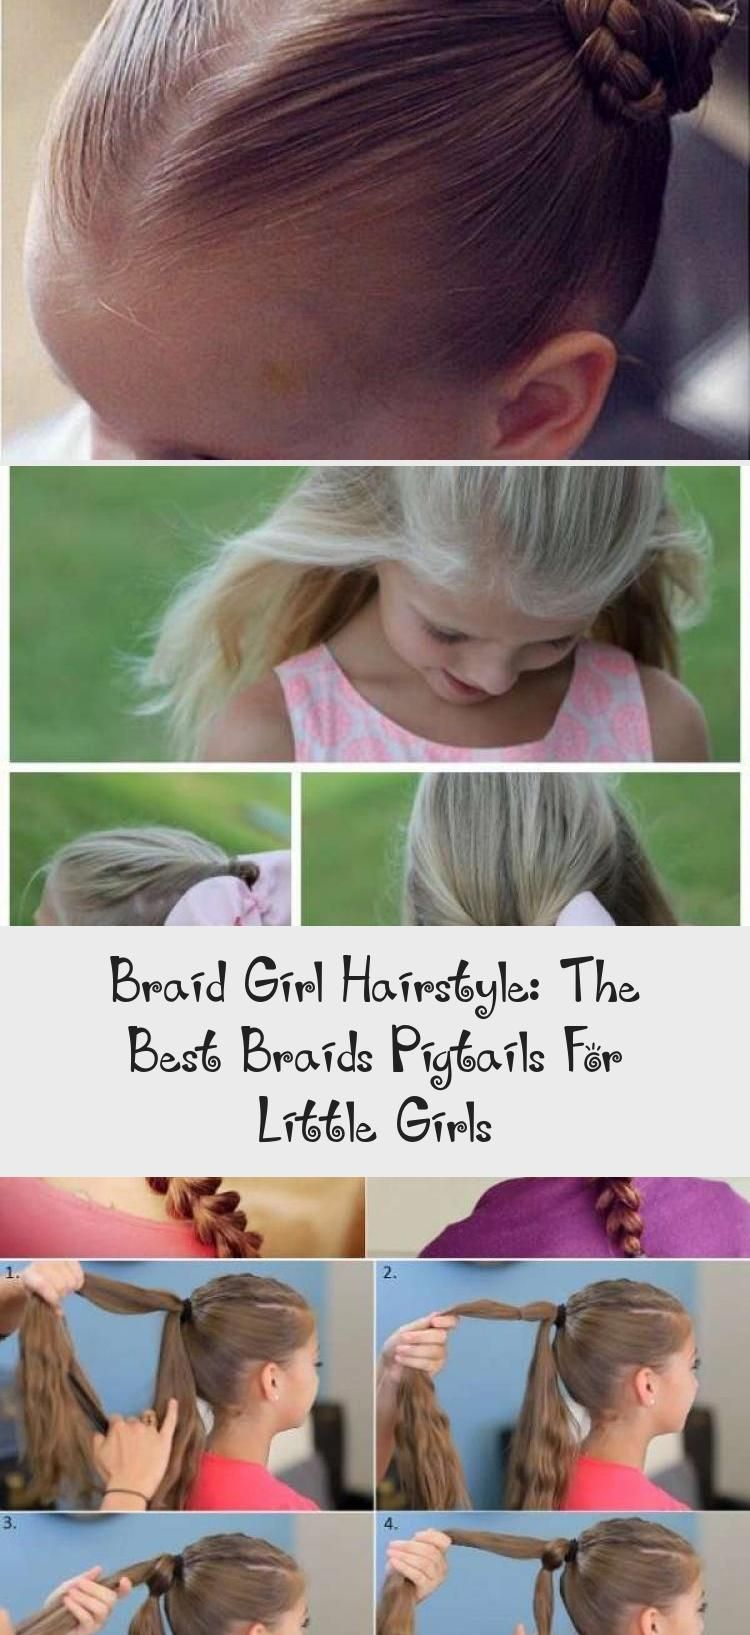 braid girl hairstyle: the best braids pigtails for little girls  #braid #braids #girls #hairstyle #little #pigtails #Headbandhairstyles #hairstylesVideos #Prettyhairstyles #Coolhairstyles #90shairstyles